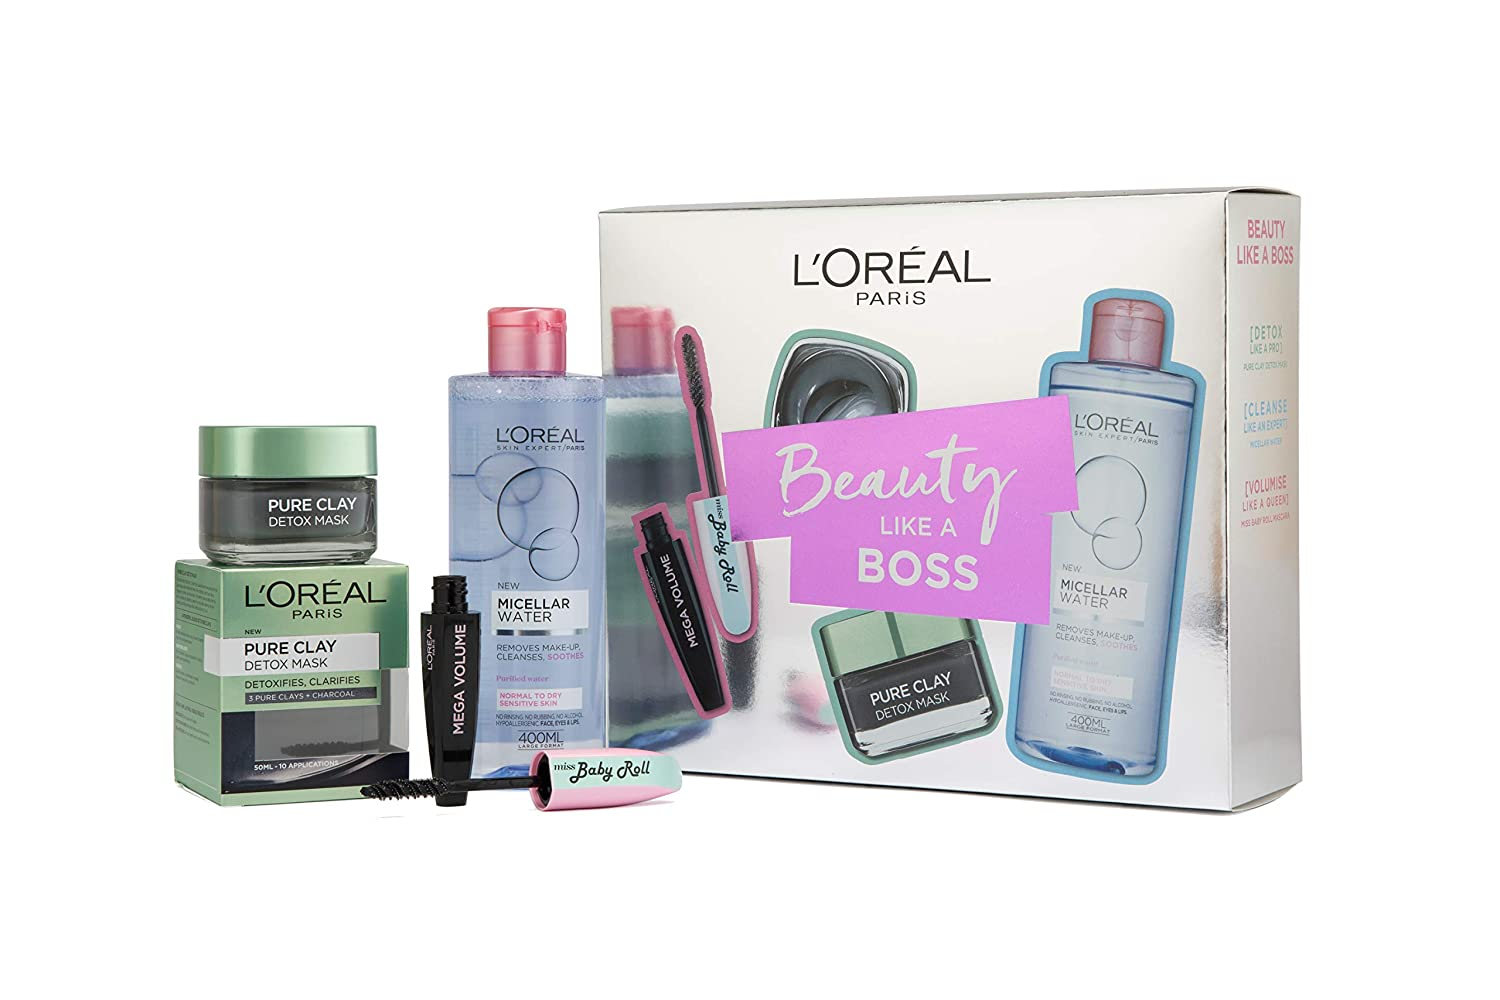 500b35fc4ae L'Oreal Paris Skin Expert Cleanser And Mascara Gift Set For Her:  Amazon.co.uk: Beauty